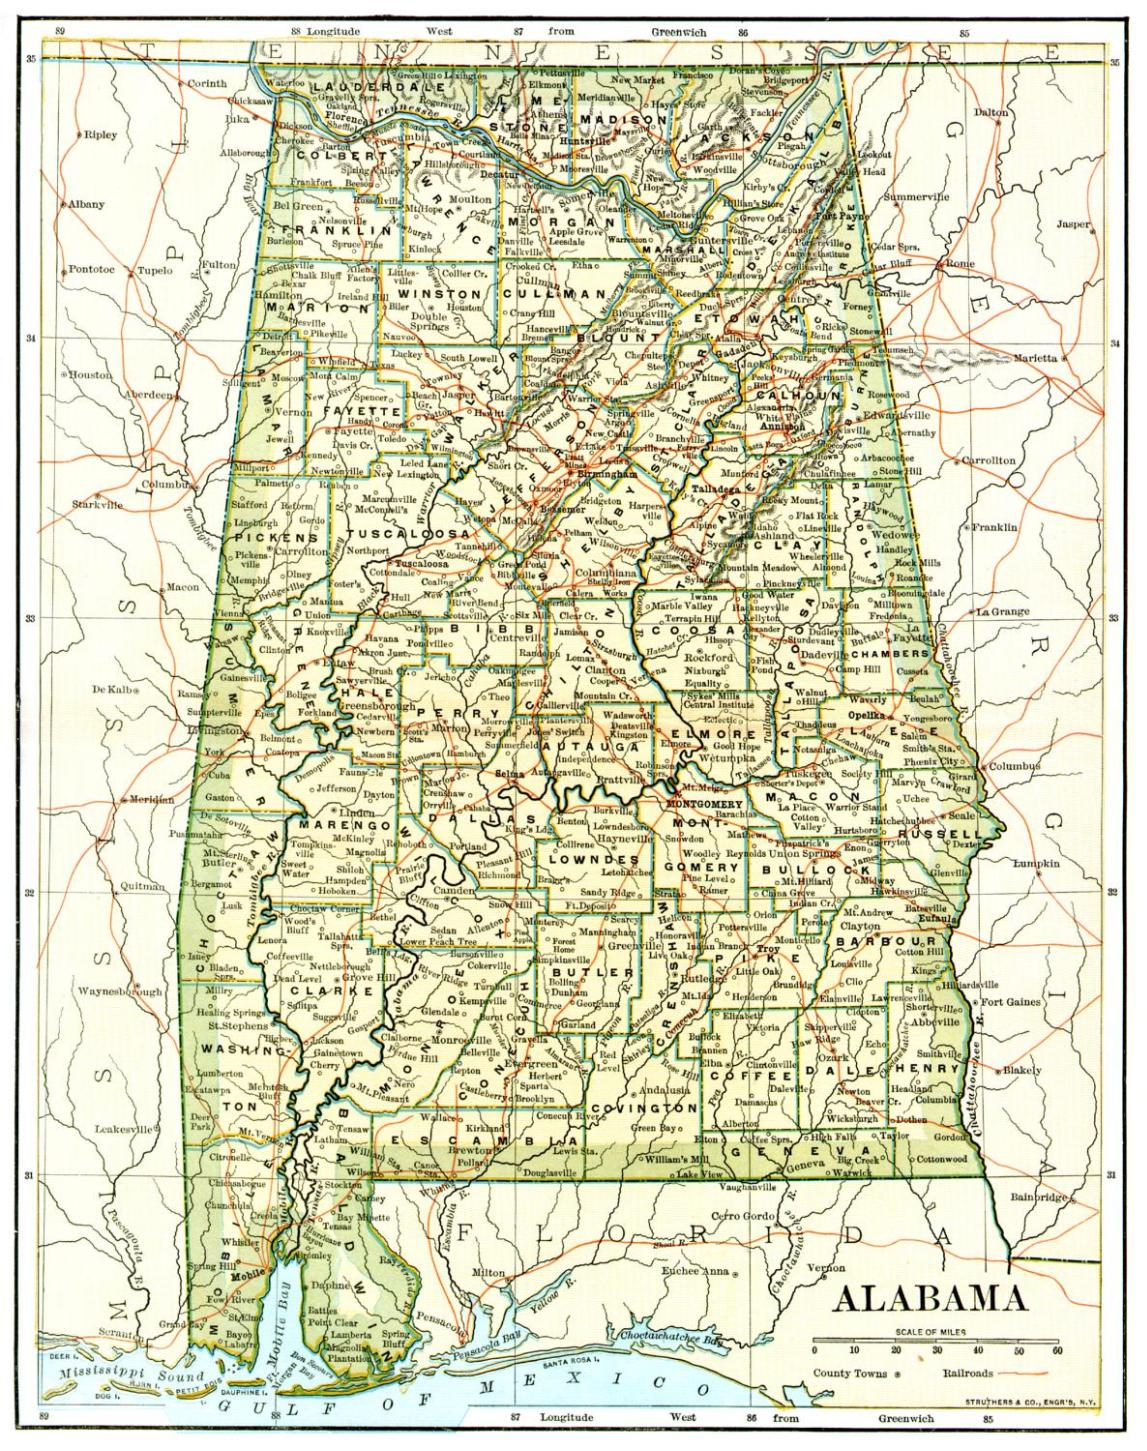 Alabama United States Map.Alabama Maps Alabama Digital Map Library Table Of Contents United